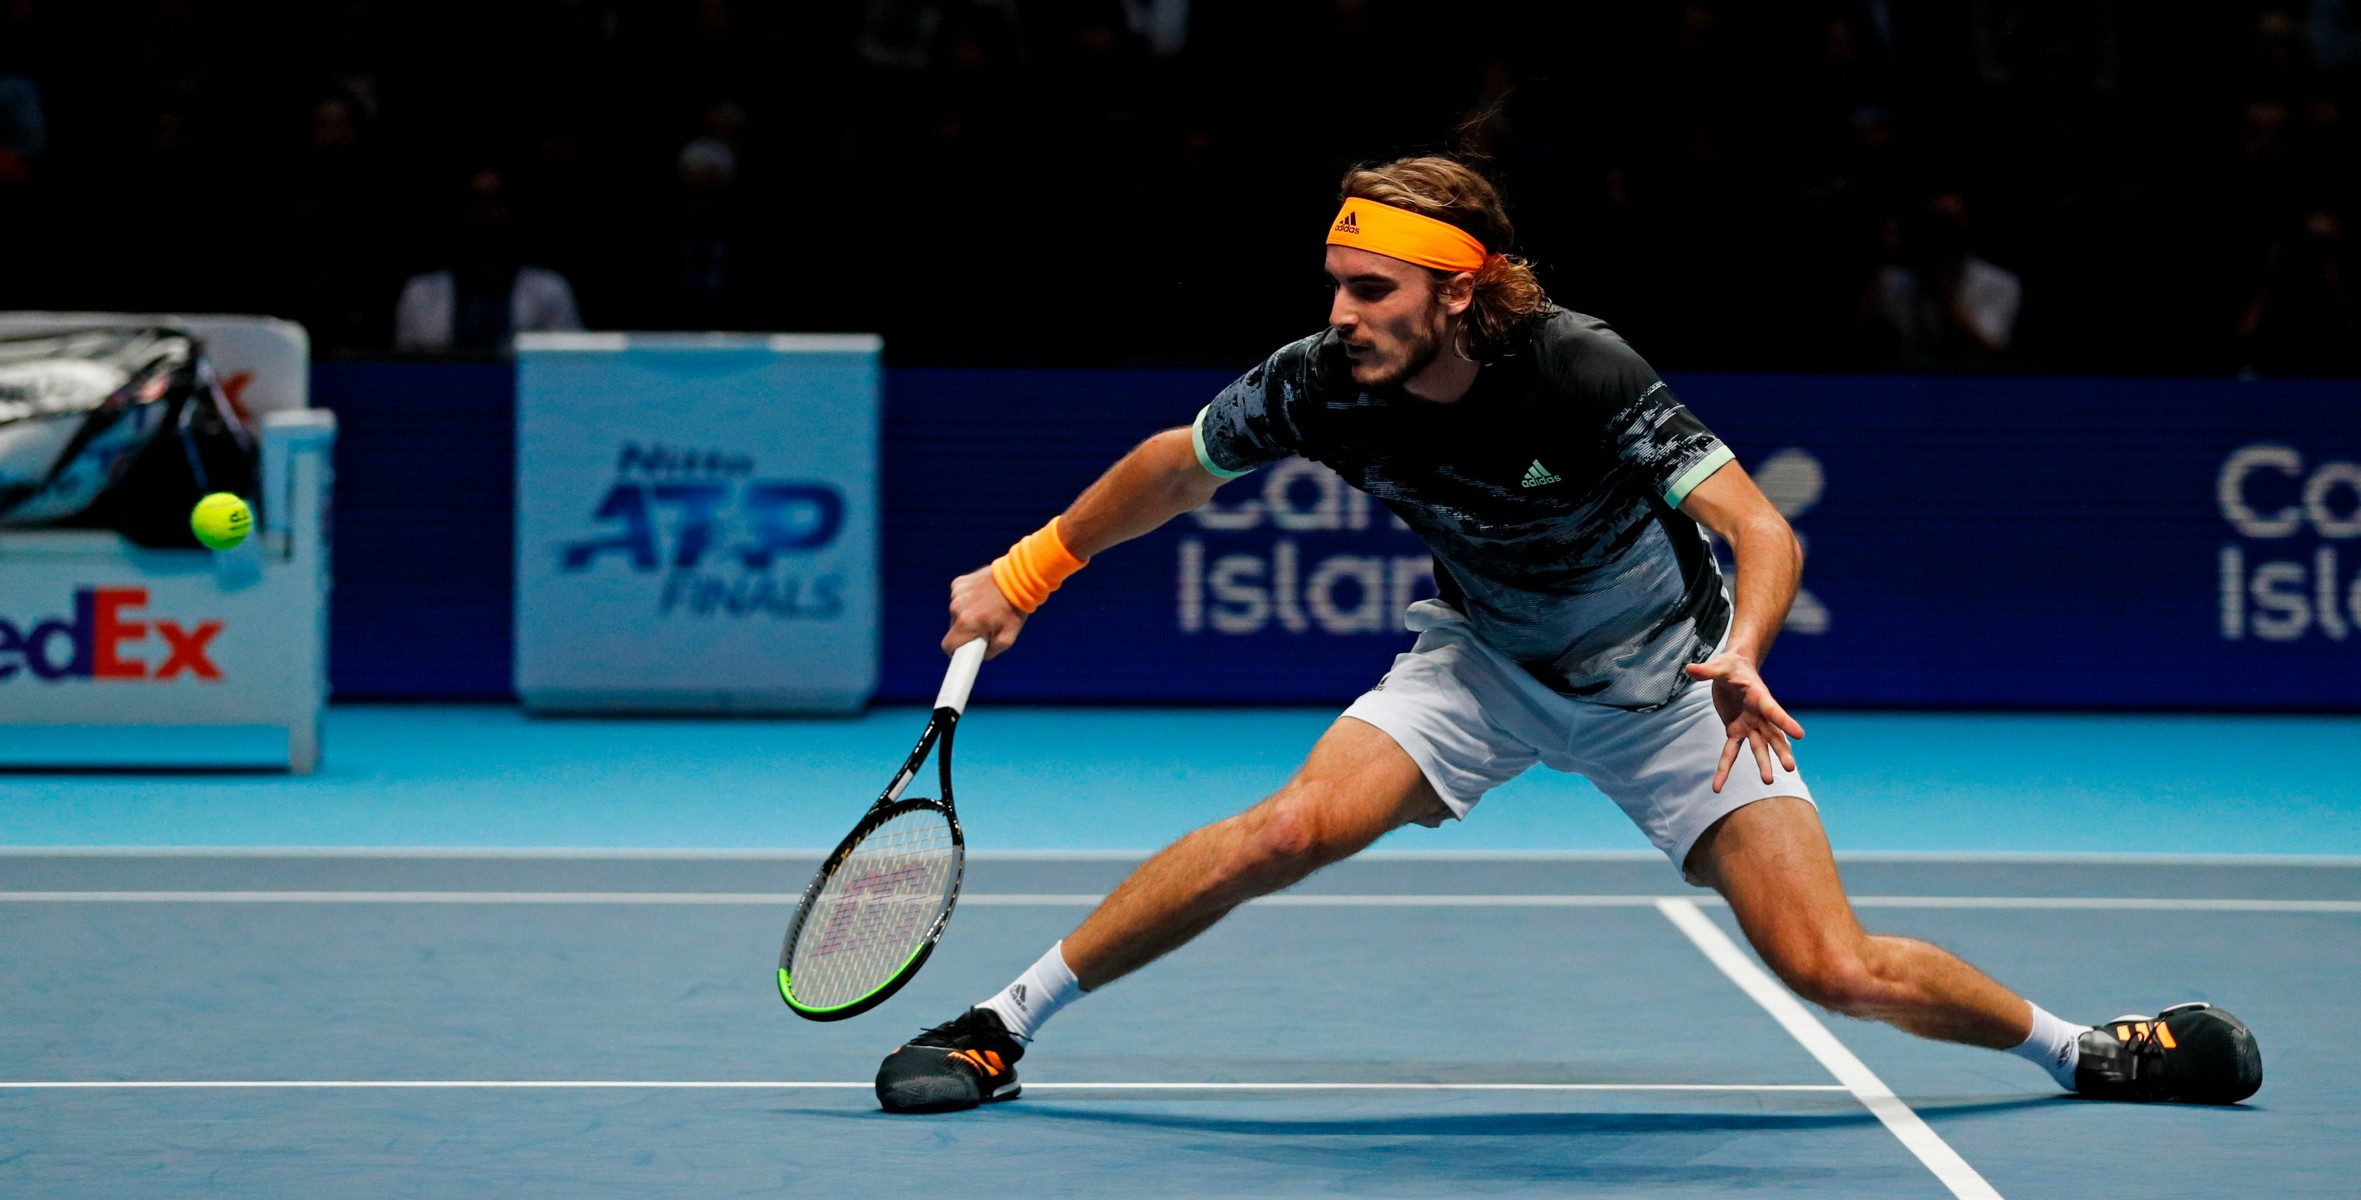 Tsitsipas performed excellently throughout and admitted the win meant an awful lot